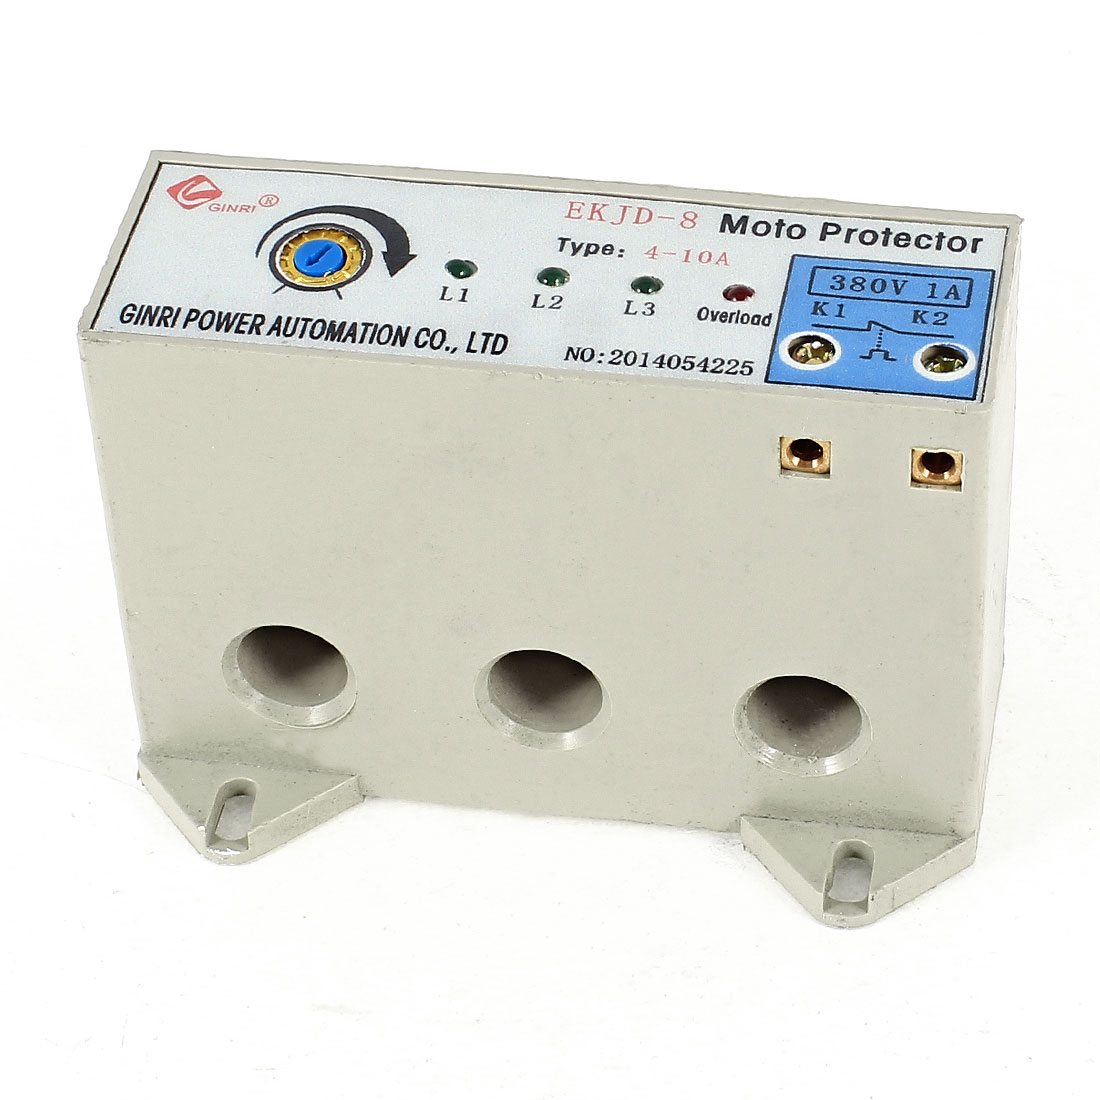 EKJD-8/4-10A 3 Phase 4-10 Ampere Adjustable Current Breaker Motor Circuit Protector Non Power